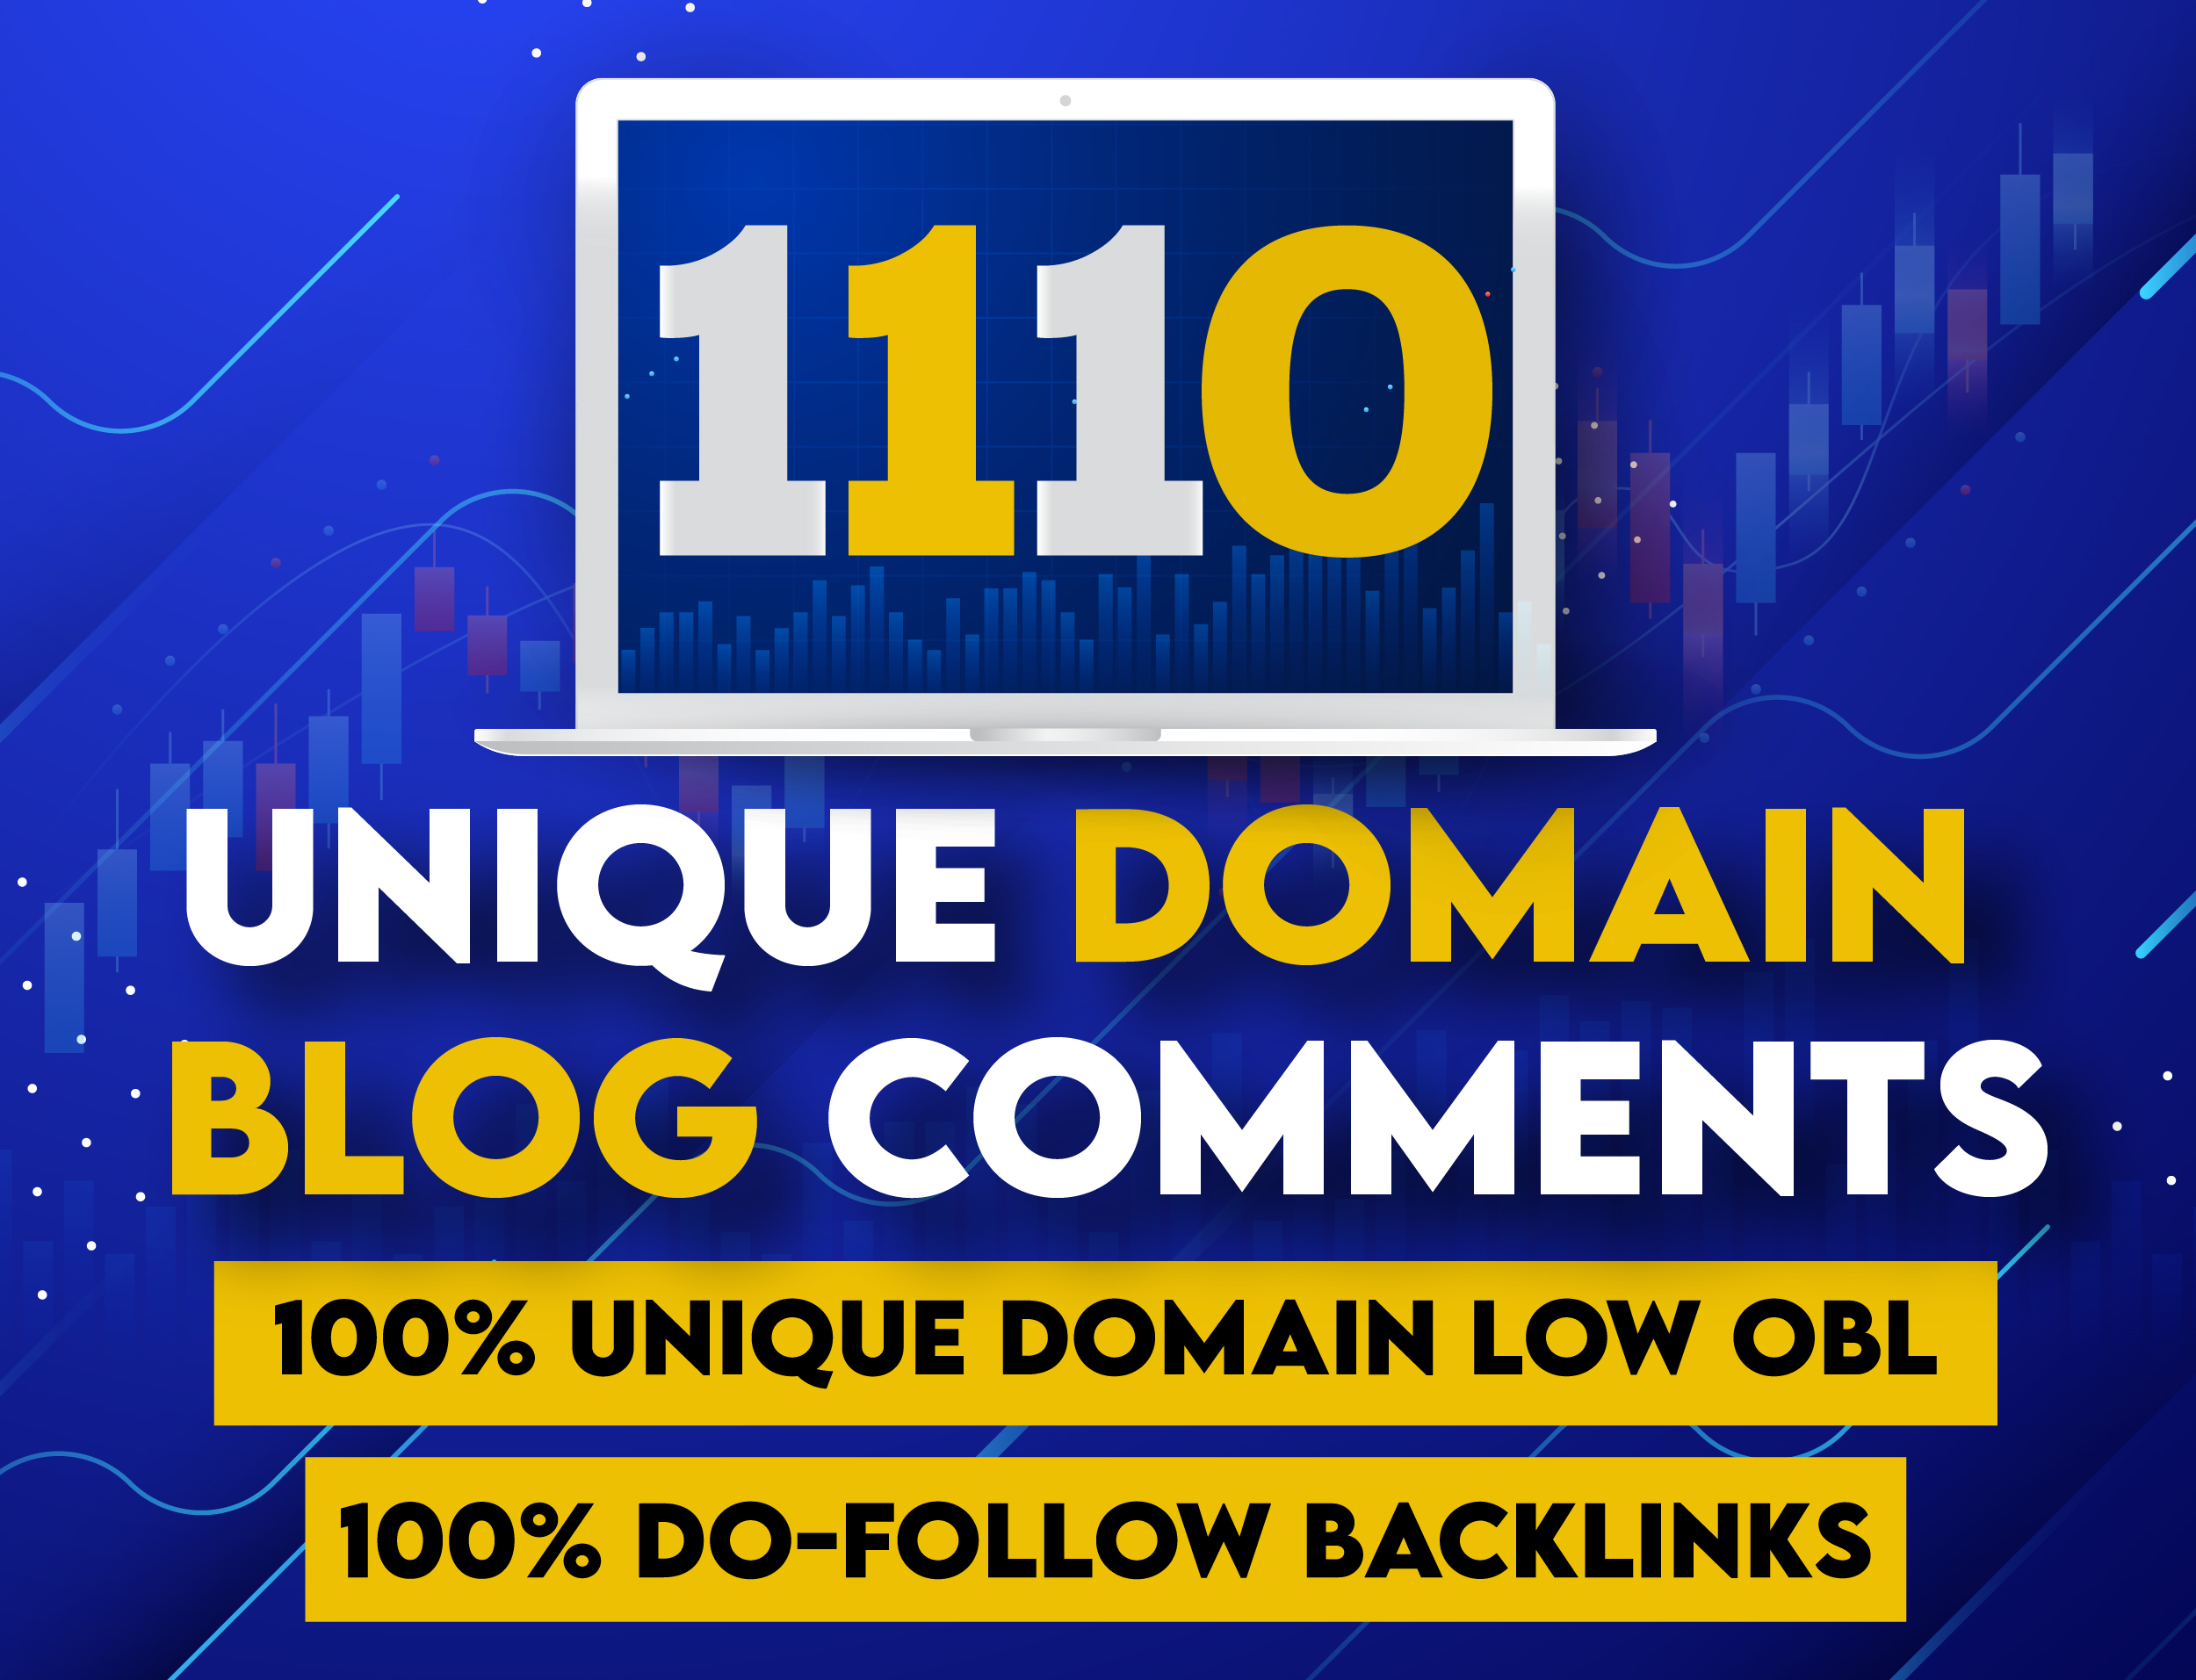 i will create 1110 unique domain dofollow blog comments backlinks with low obl high DA PA TF CF site